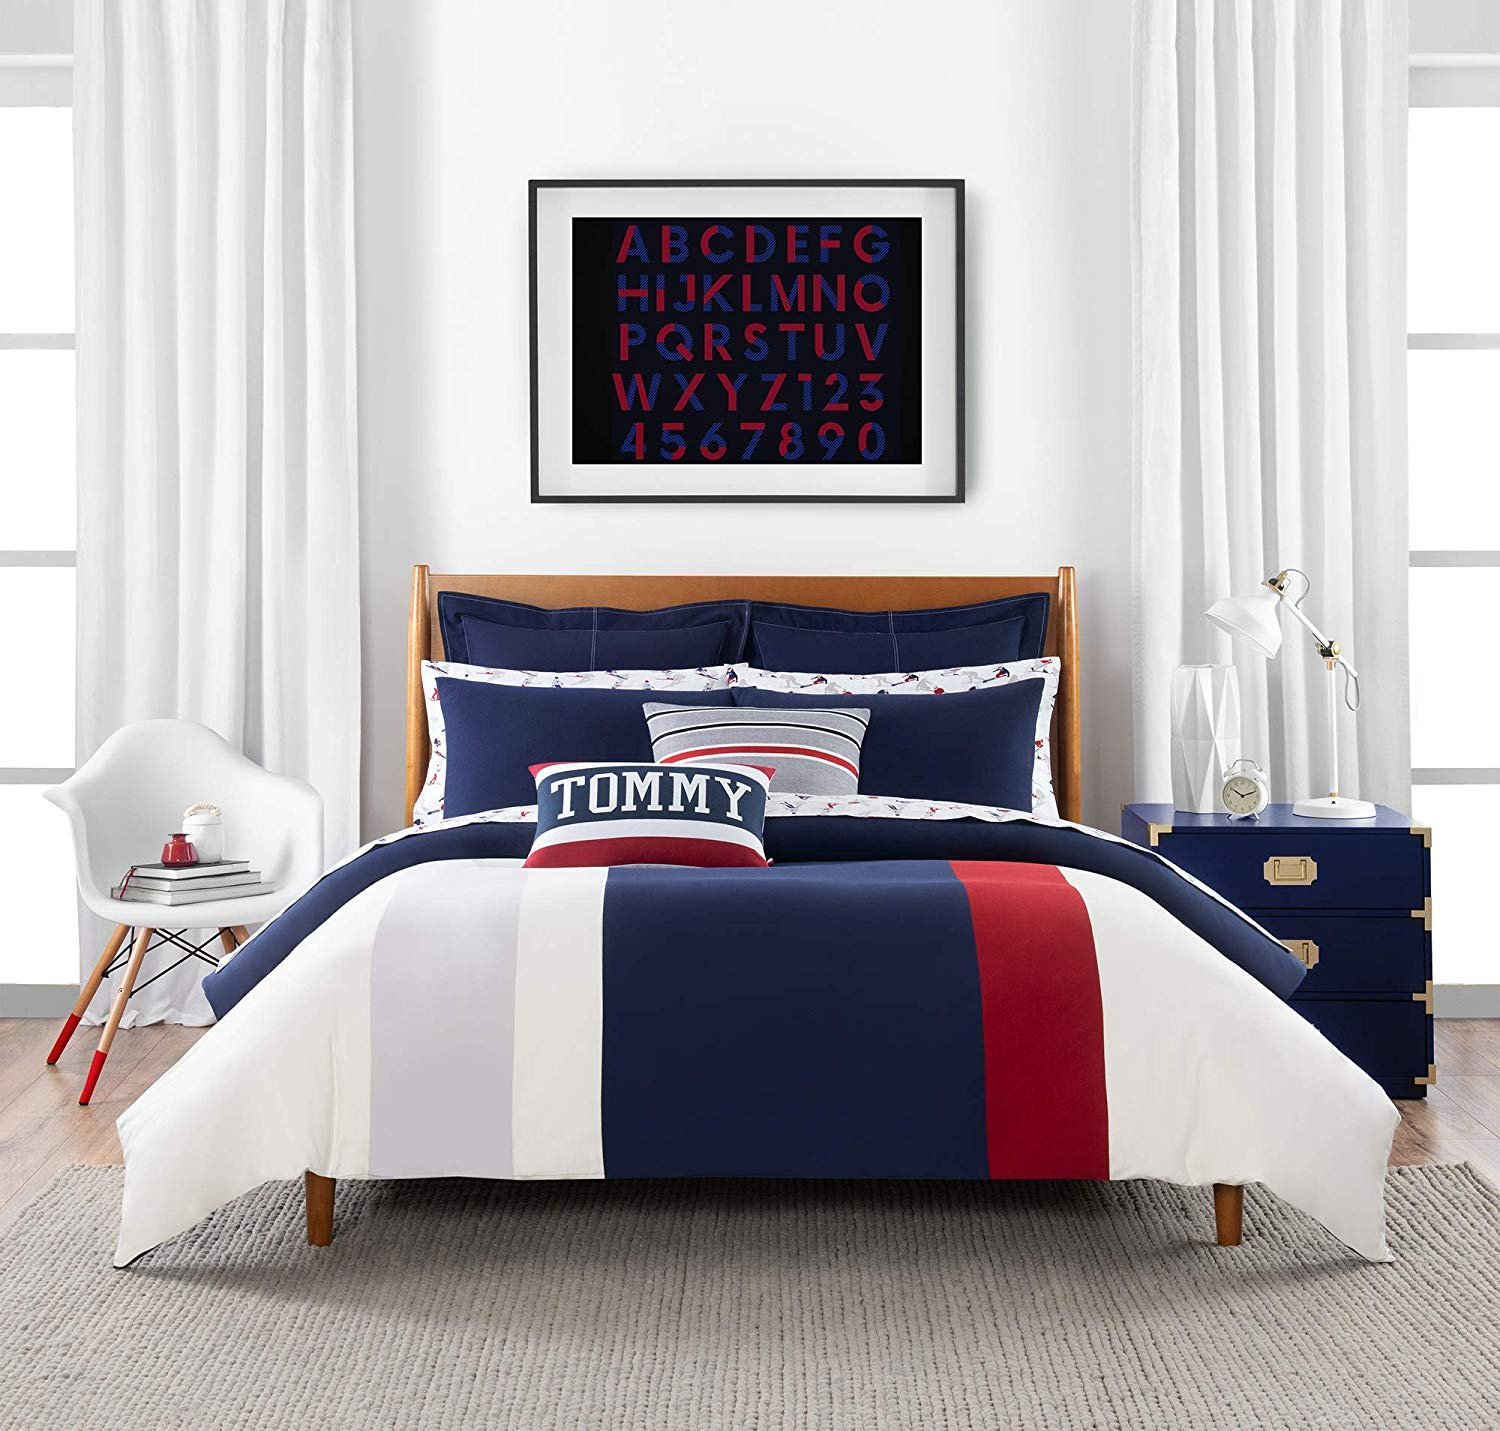 Clothing Rack for Bedroom Inspirational Amazon tommy Hilfiger Clash Of 85 Stripe Bedding